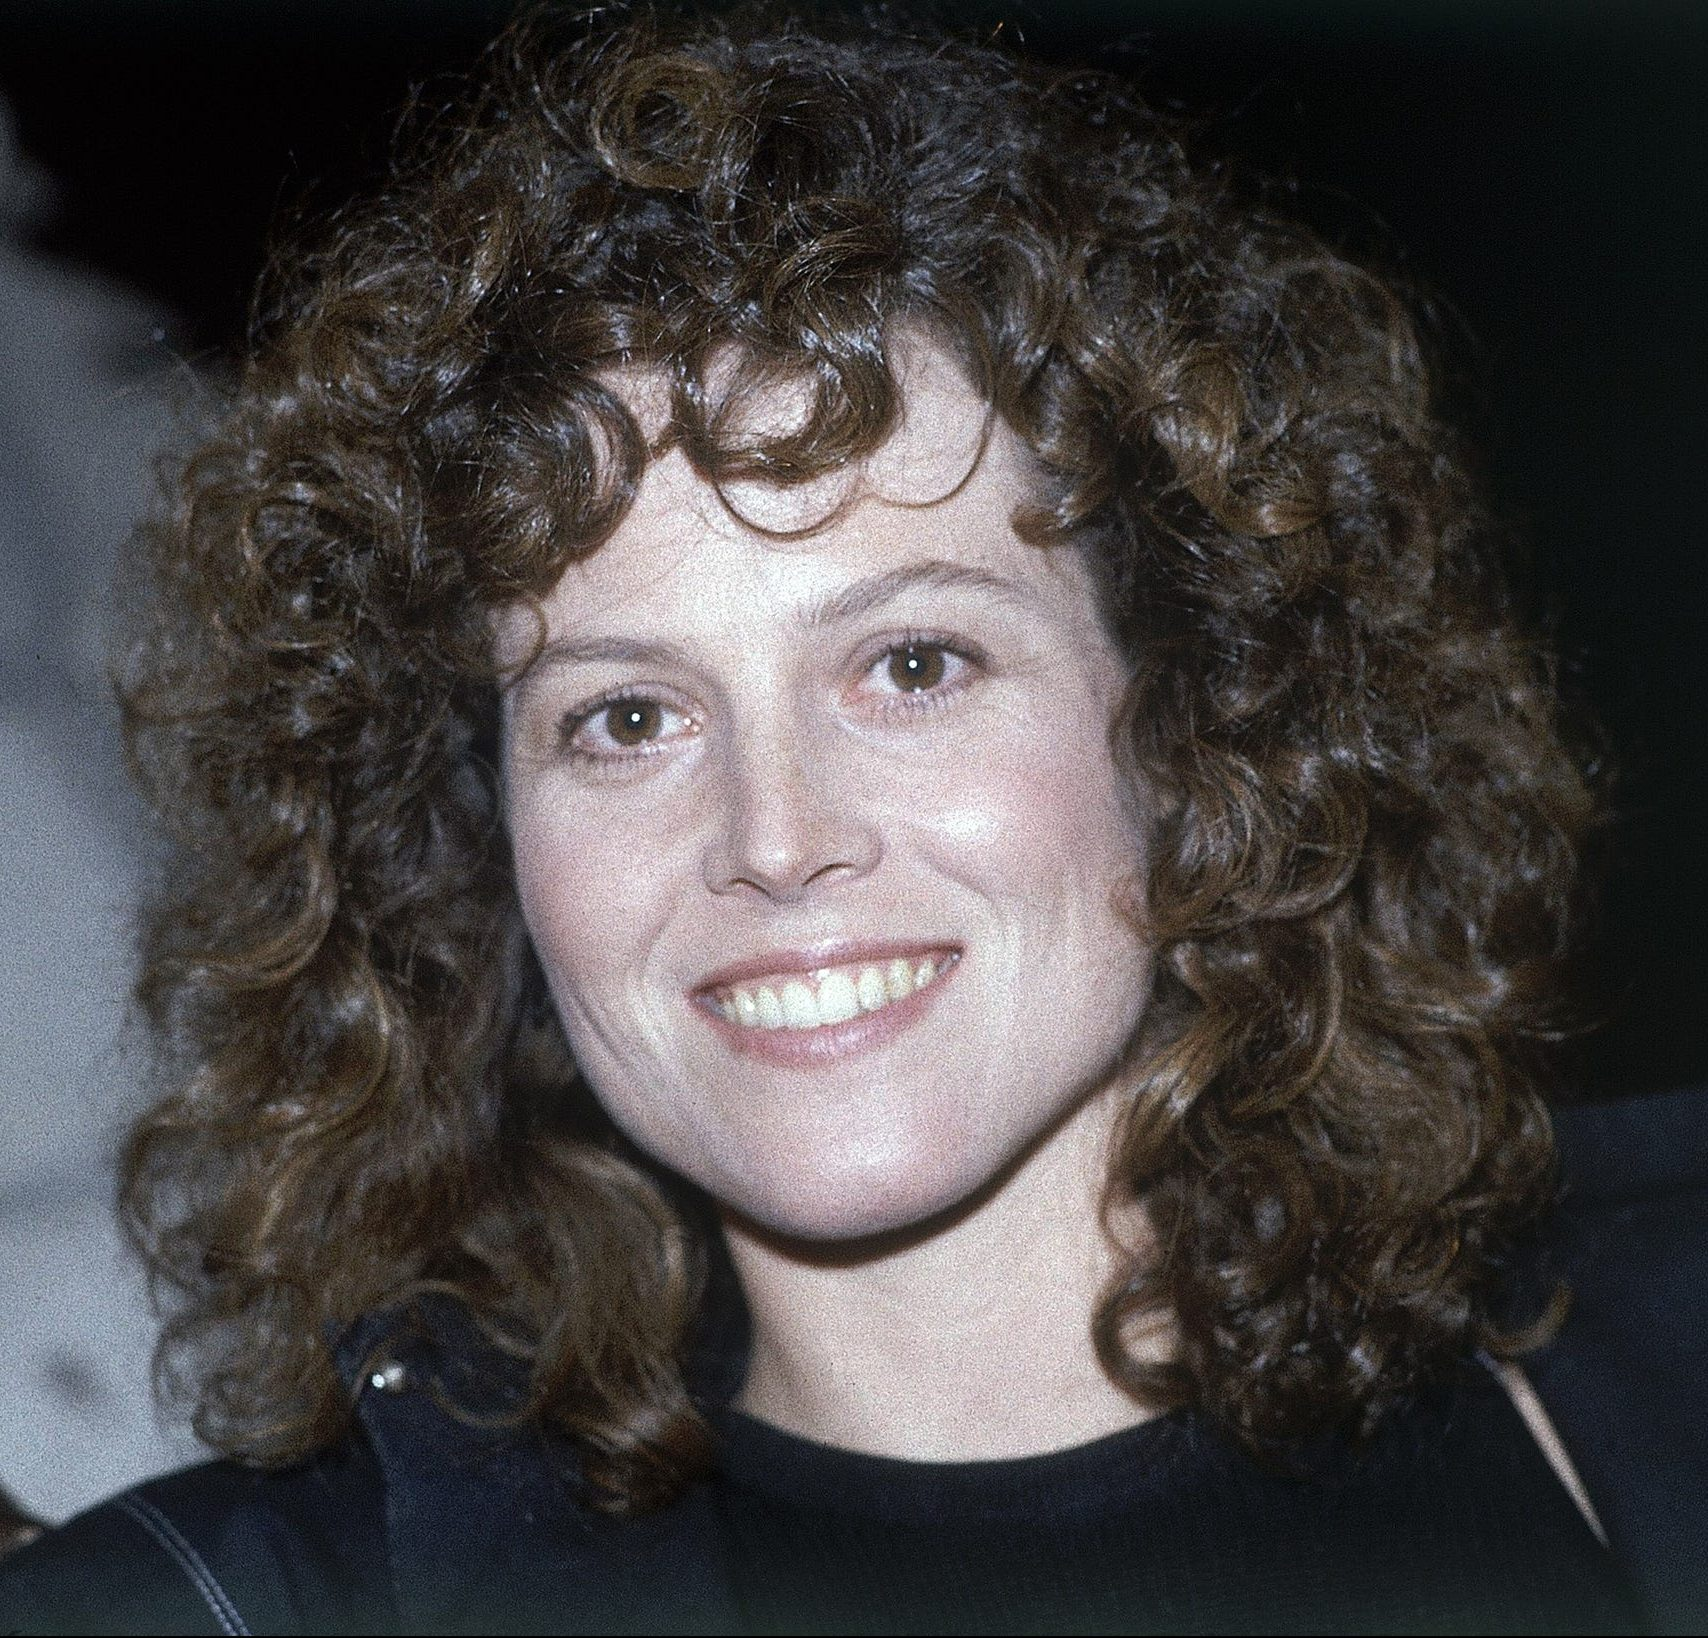 459d4ed1 9ff1 4f8f bd07 17d289ae432f 1983 e1609766080787 20 Things You Probably Didn't Know About Sigourney Weaver